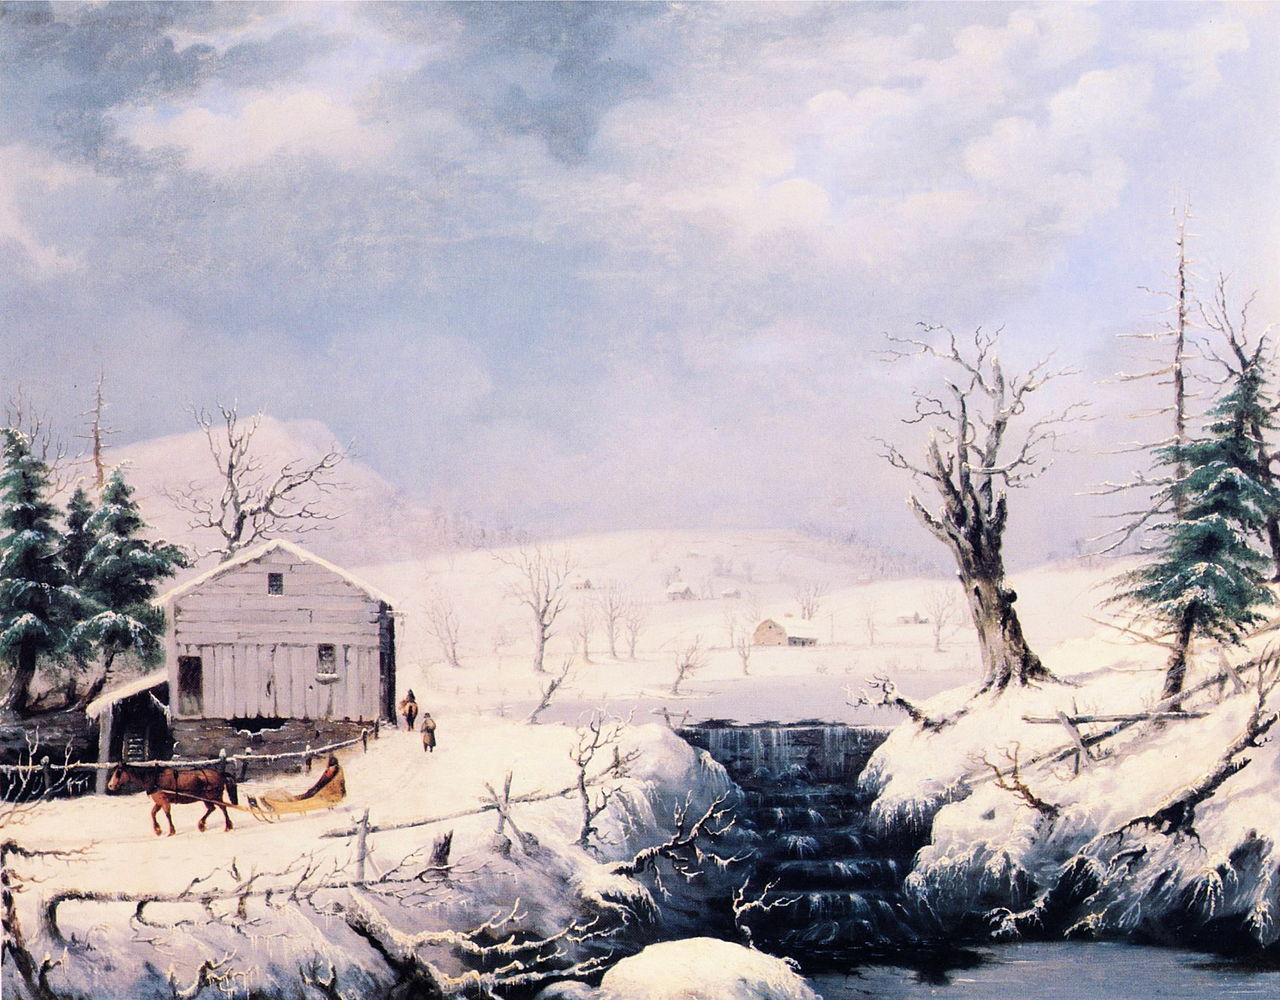 https://upload.wikimedia.org/wikipedia/commons/thumb/a/aa/George_Henry_Durrie_-_Winter_in_New_England.JPG/1280px-George_Henry_Durrie_-_Winter_in_New_England.JPG